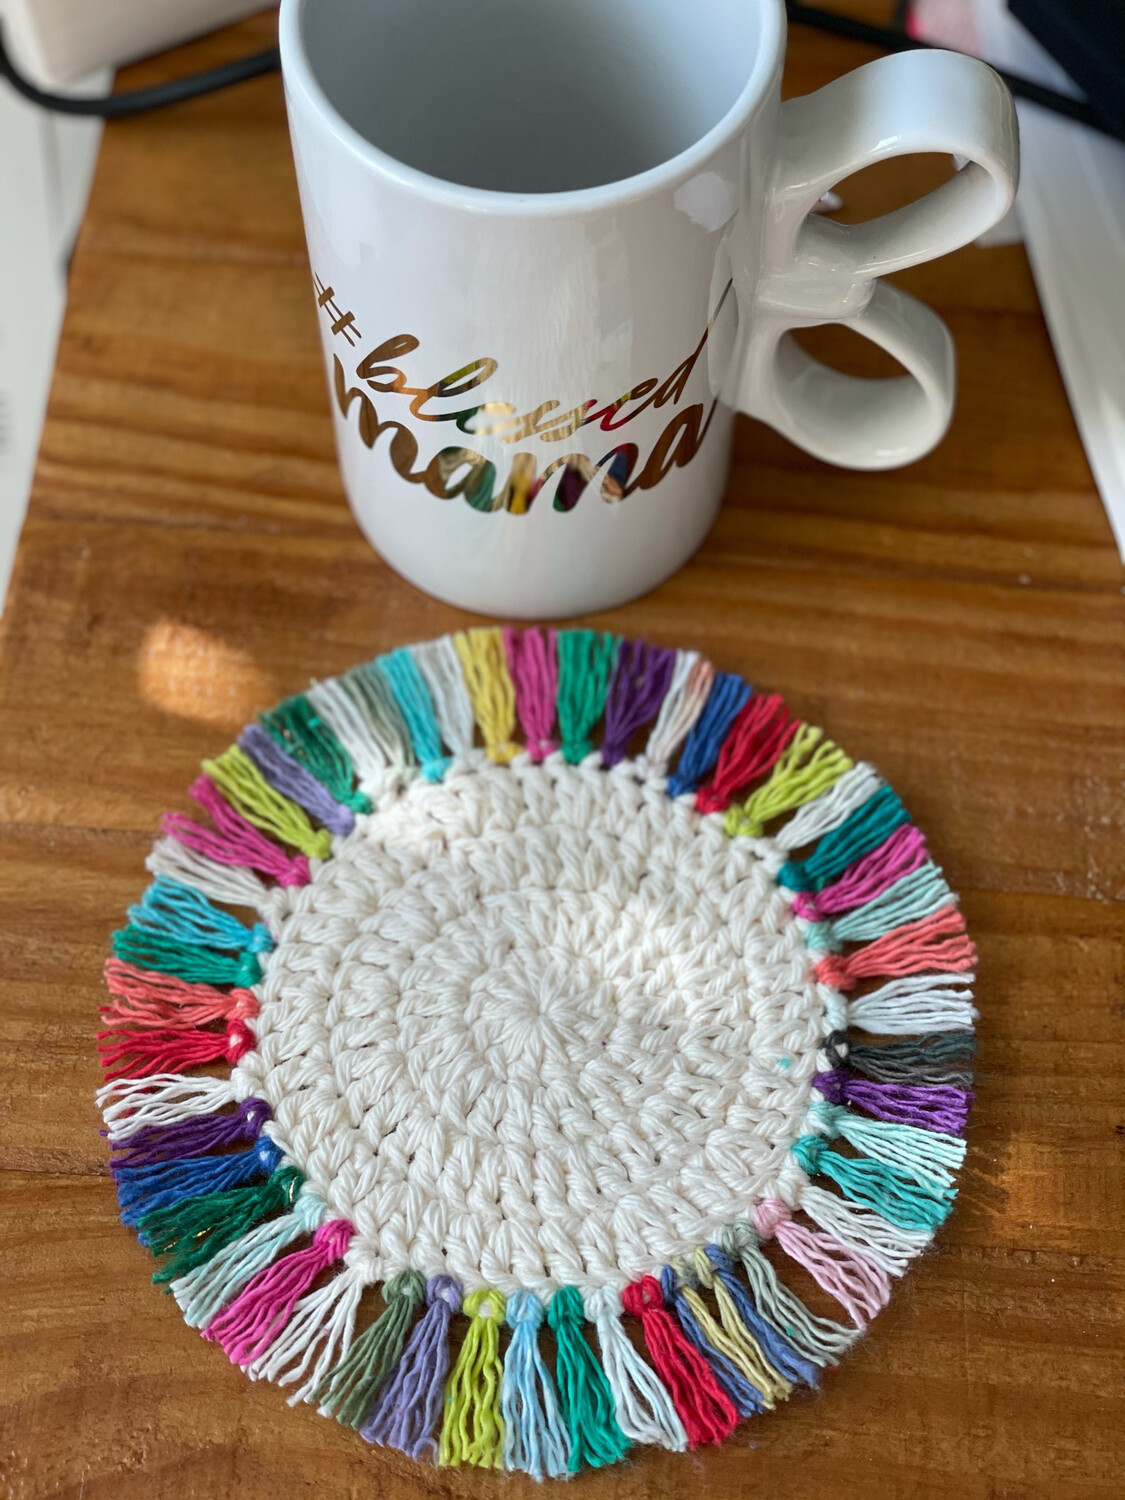 All The Colors Coaster Set